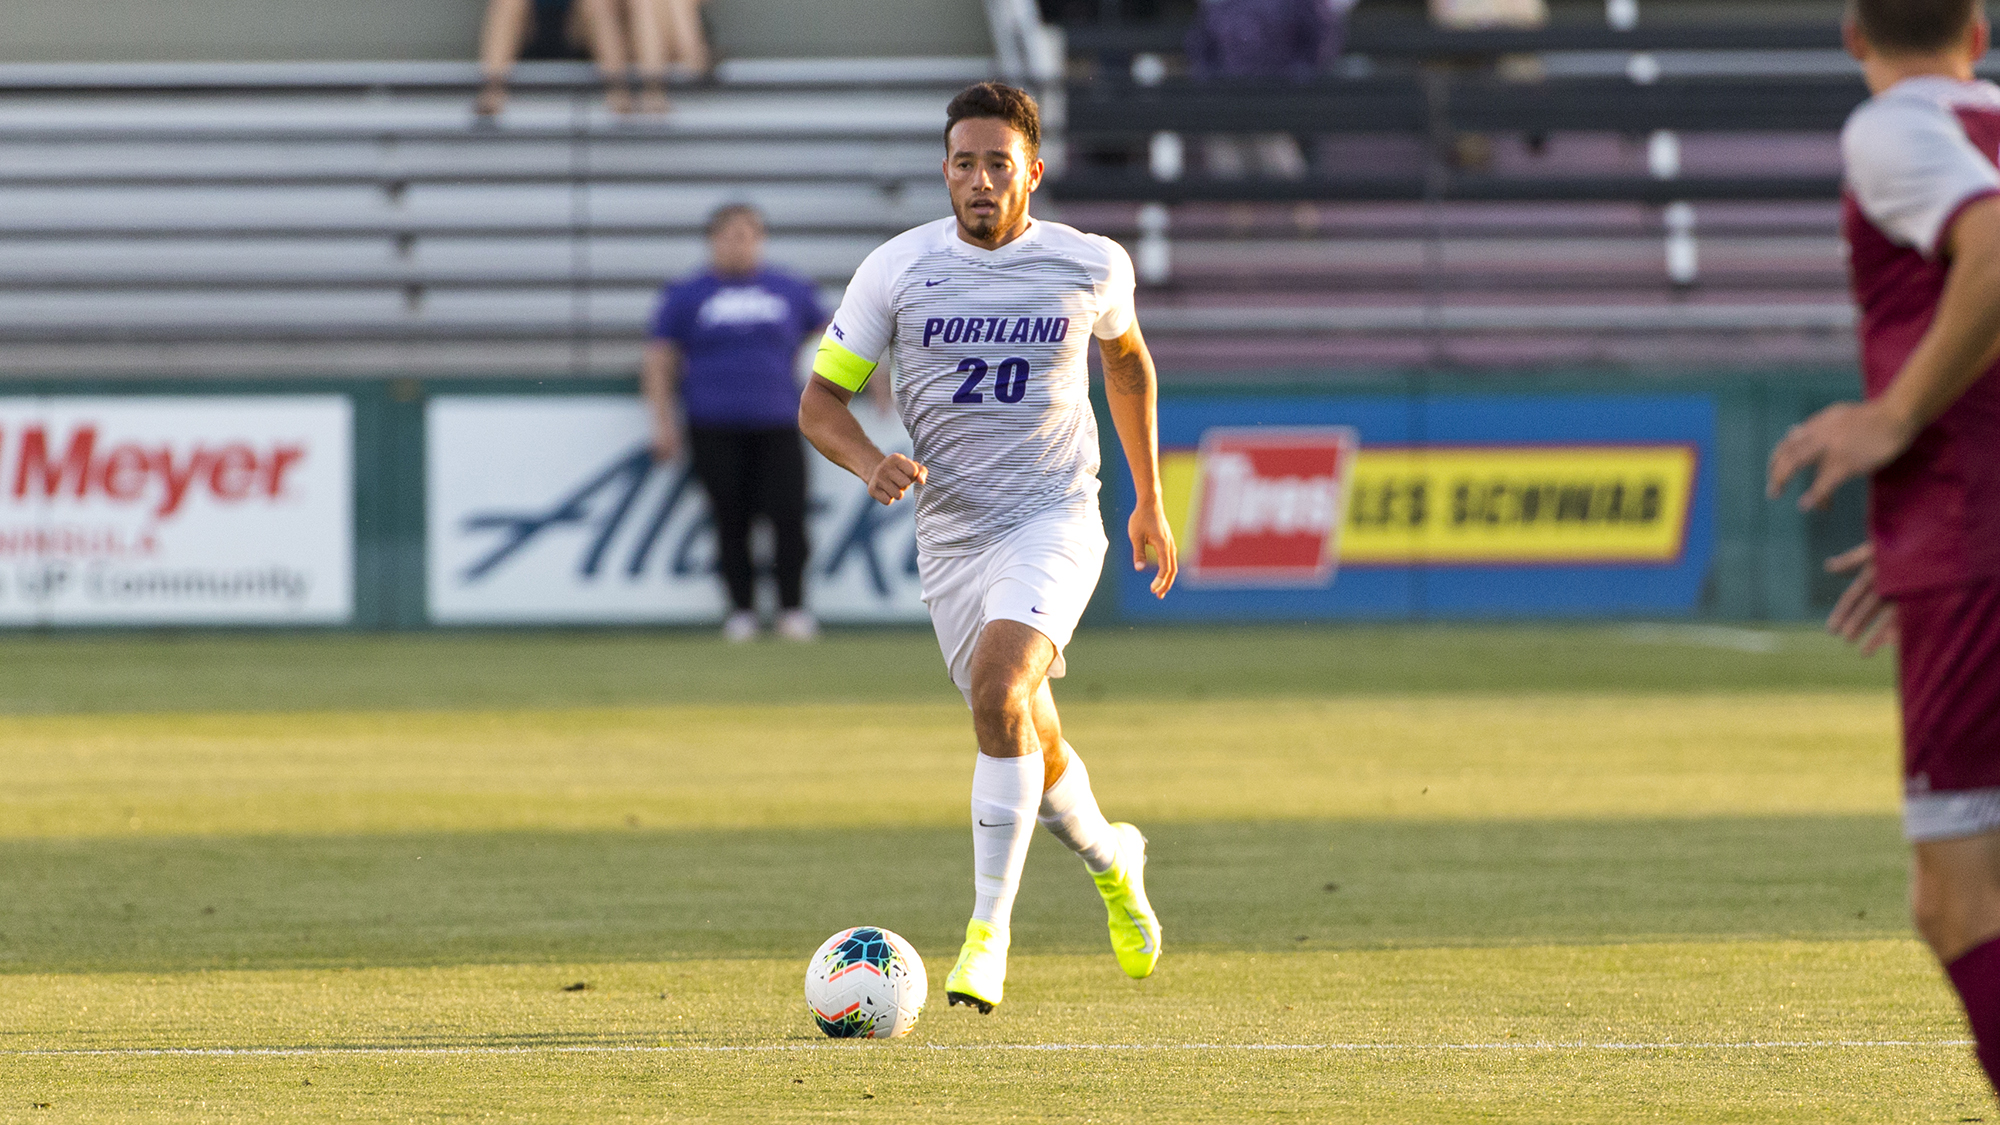 Esteban Calvo Men S Soccer University Of Portland Athletics